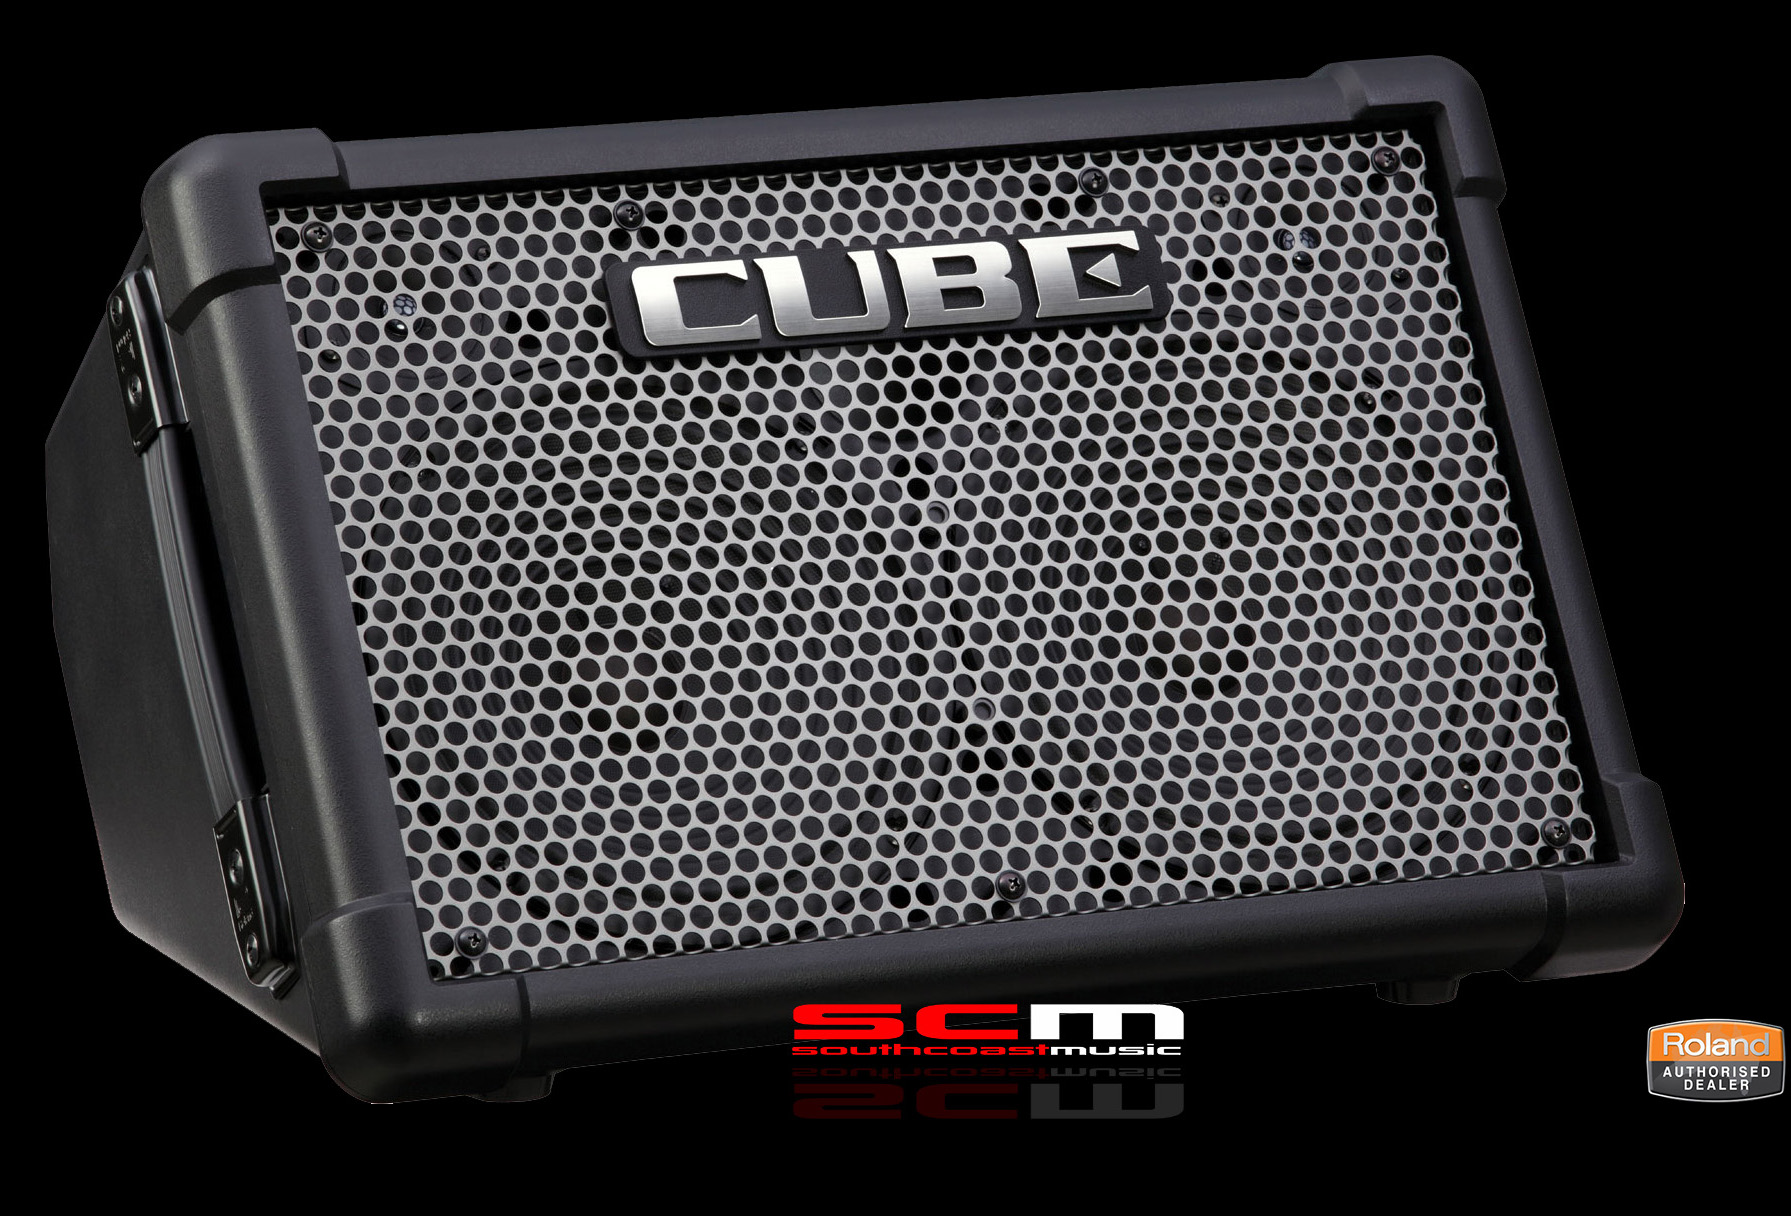 roland cube street ex review